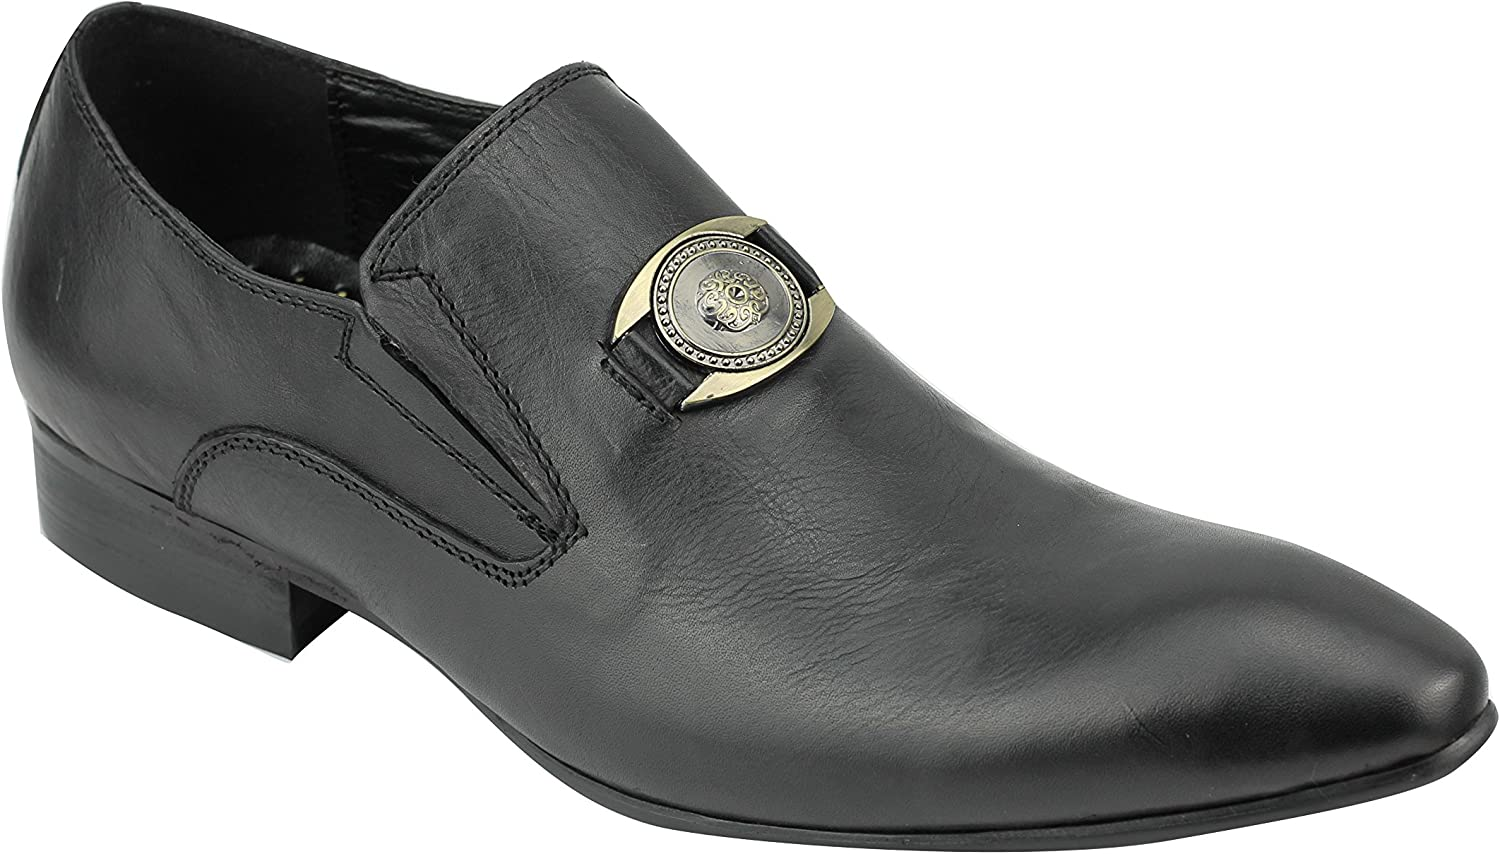 Mens Real Leather Black Brown Smart Casual Slip on Loafers Winklepickers Shoes